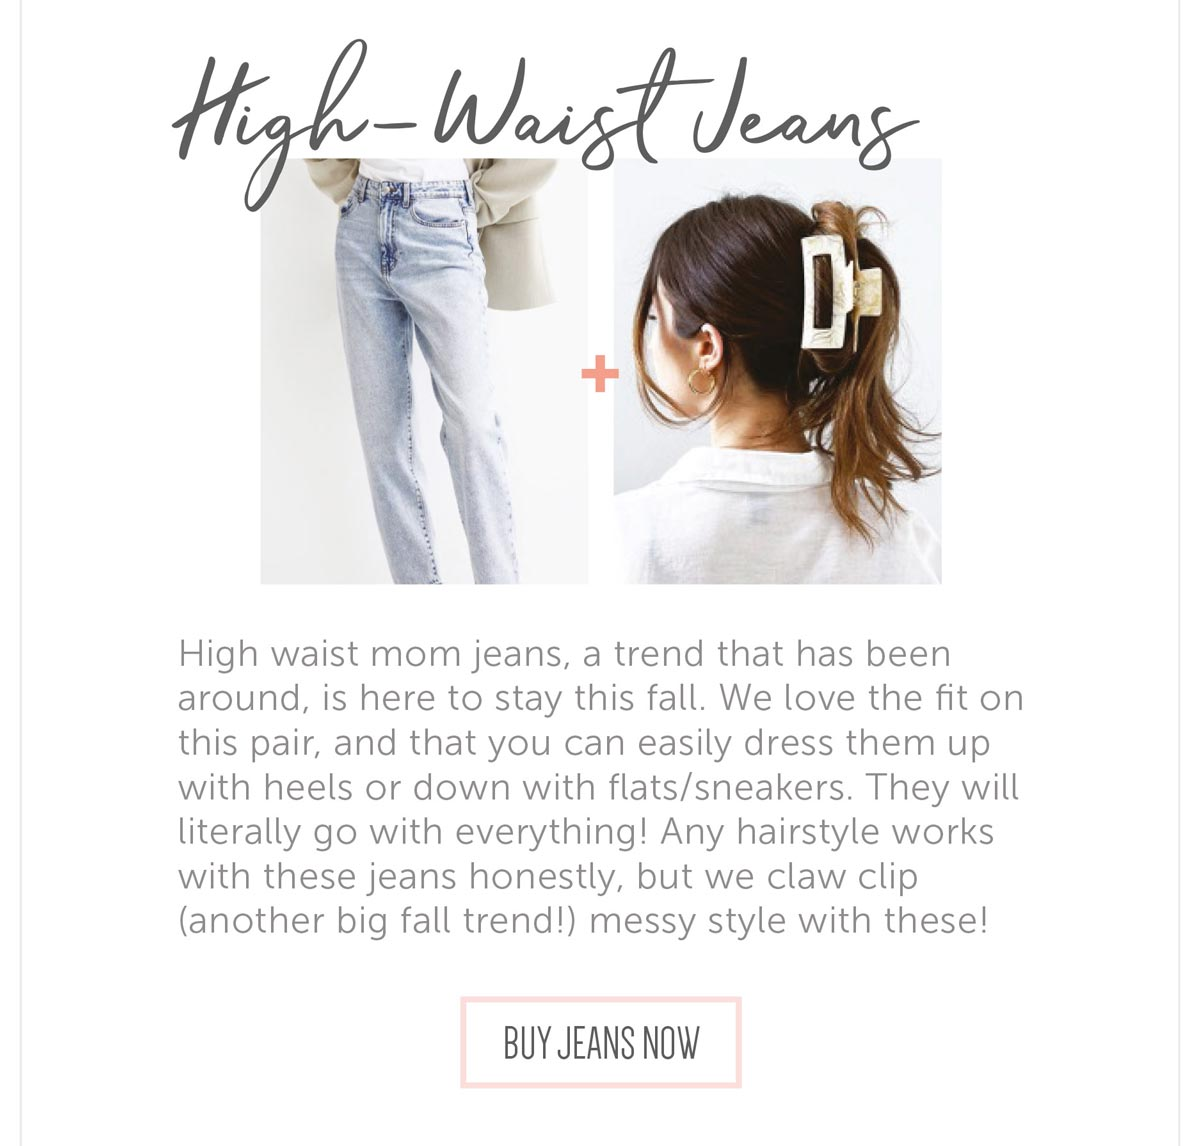 High waist mom jeans, a trend that has been around, is here to stay this fall. We love the fit on this pair, and that you can easily dress them up with heels or down with flats/sneakers. They will literally go with everything! Any hairstyle works with these jeans honestly, but we claw clip (another big fall trend!) messy style with these!